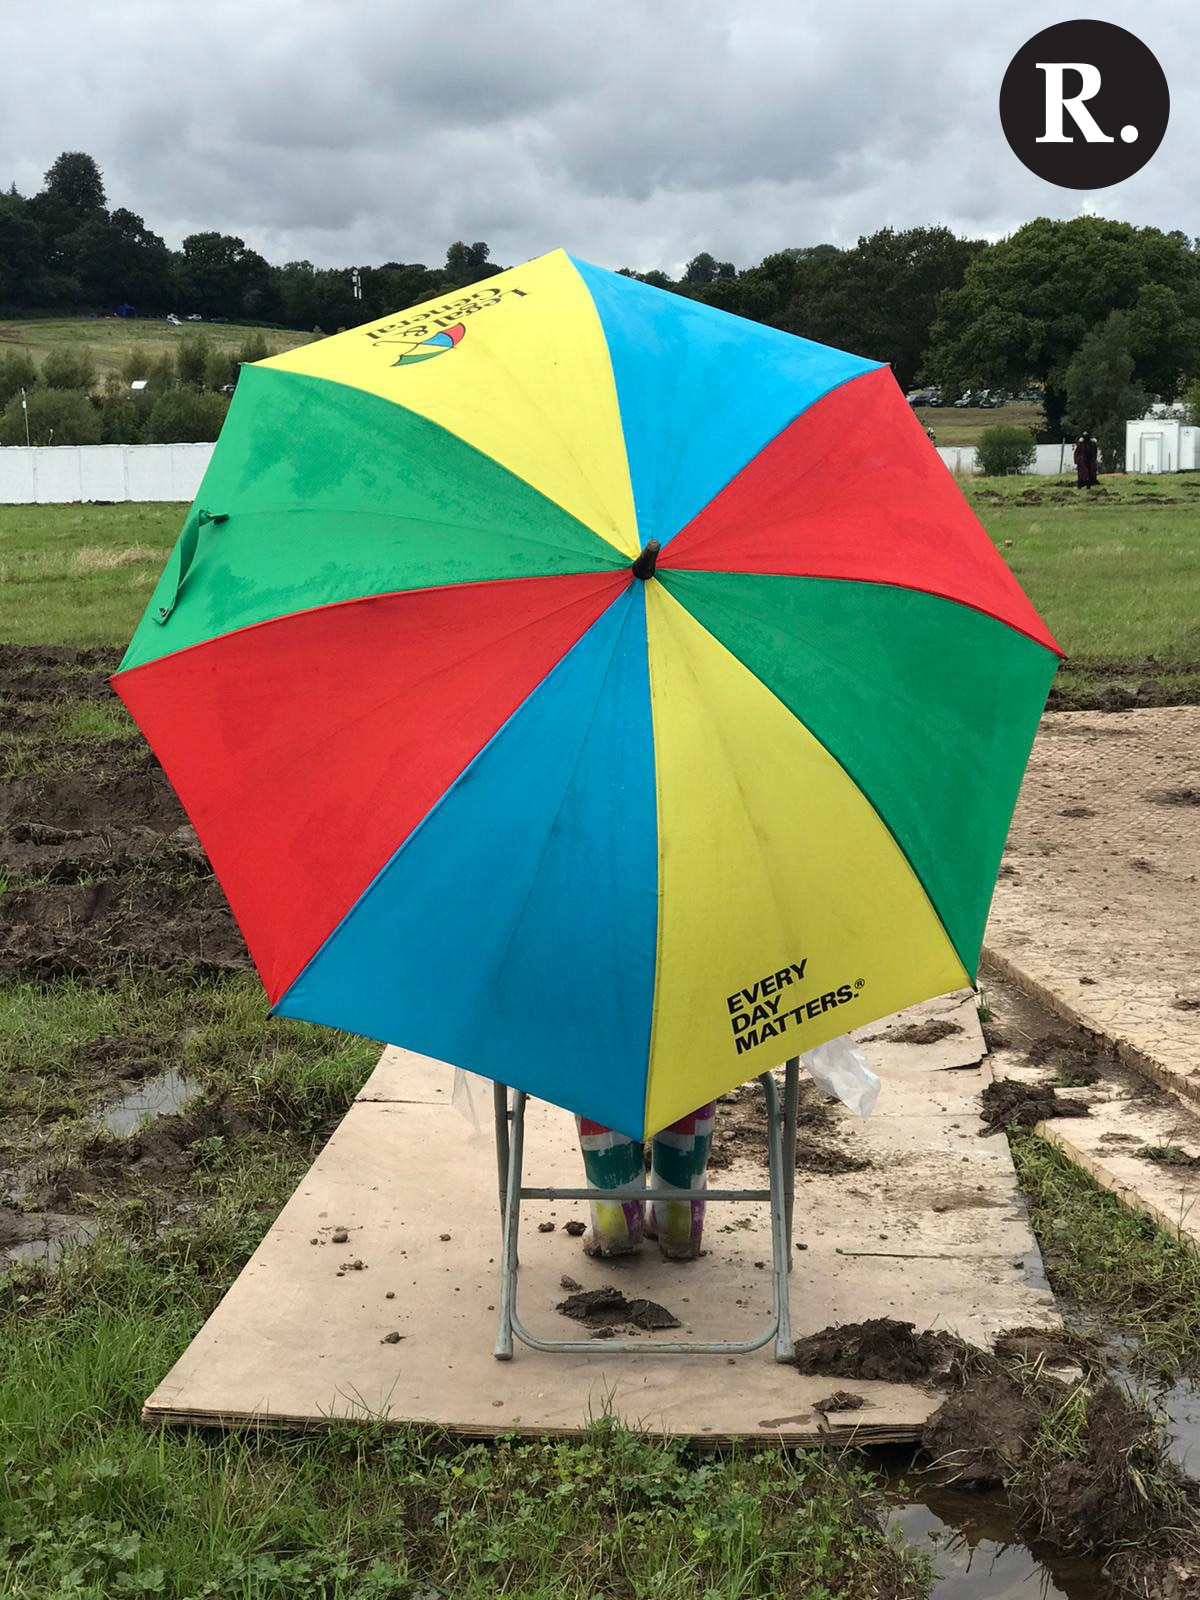 People of Jalsa: An Umbrella from a Stranger